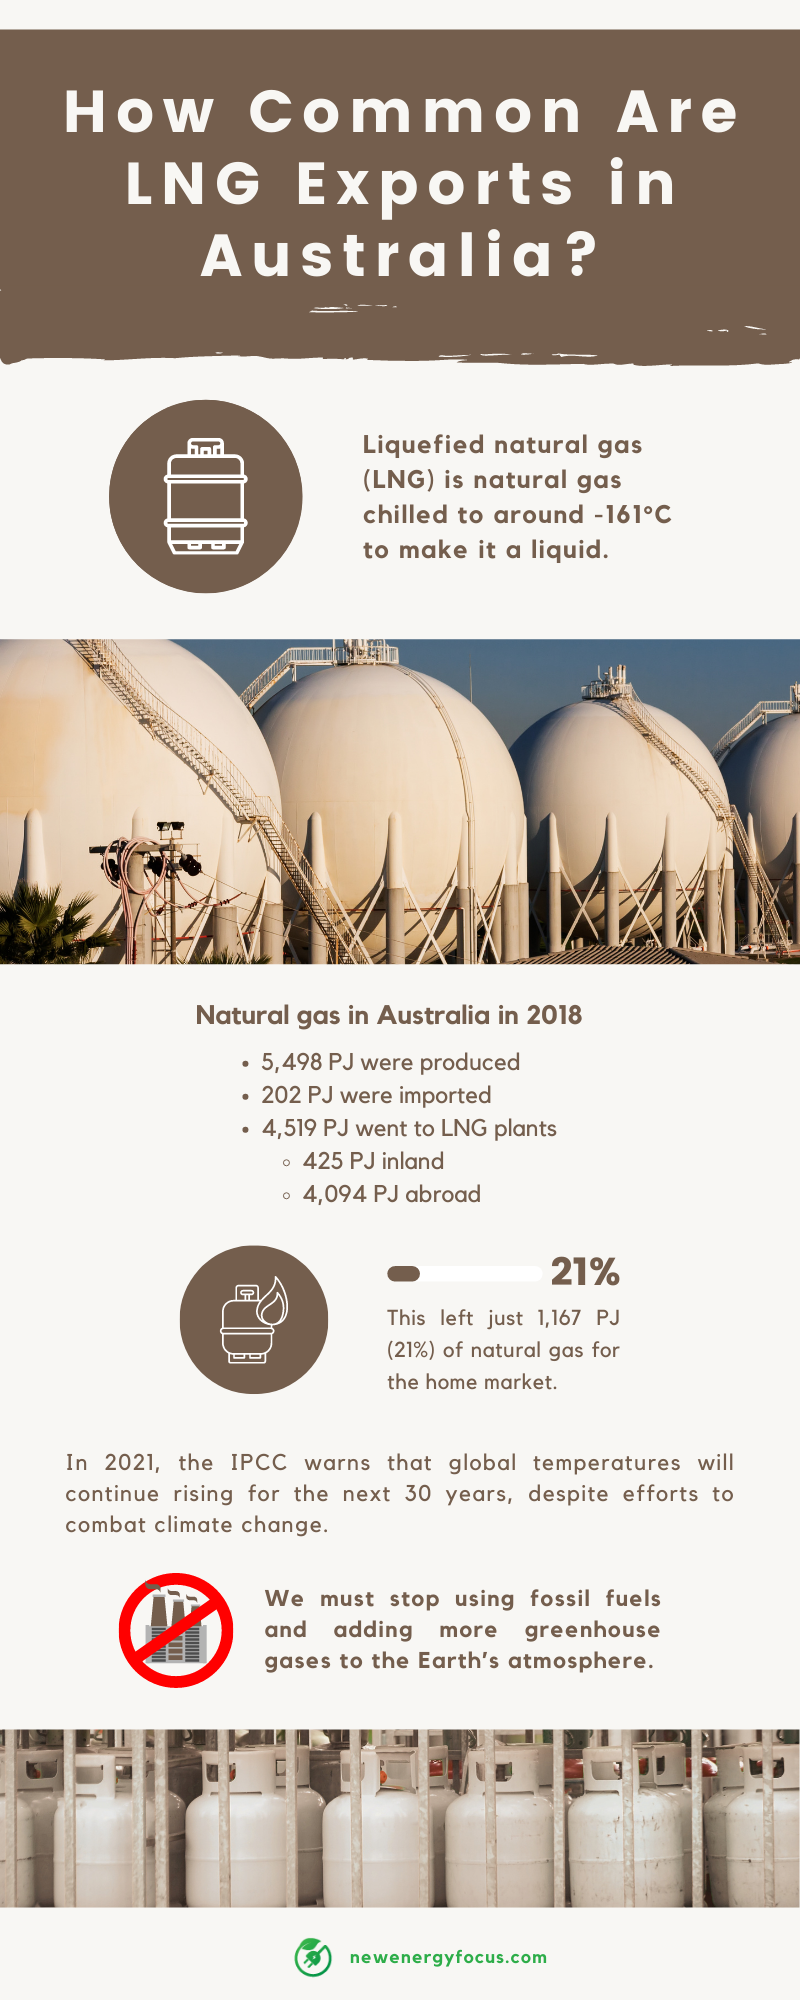 How Common Are LNG Exports in Australia